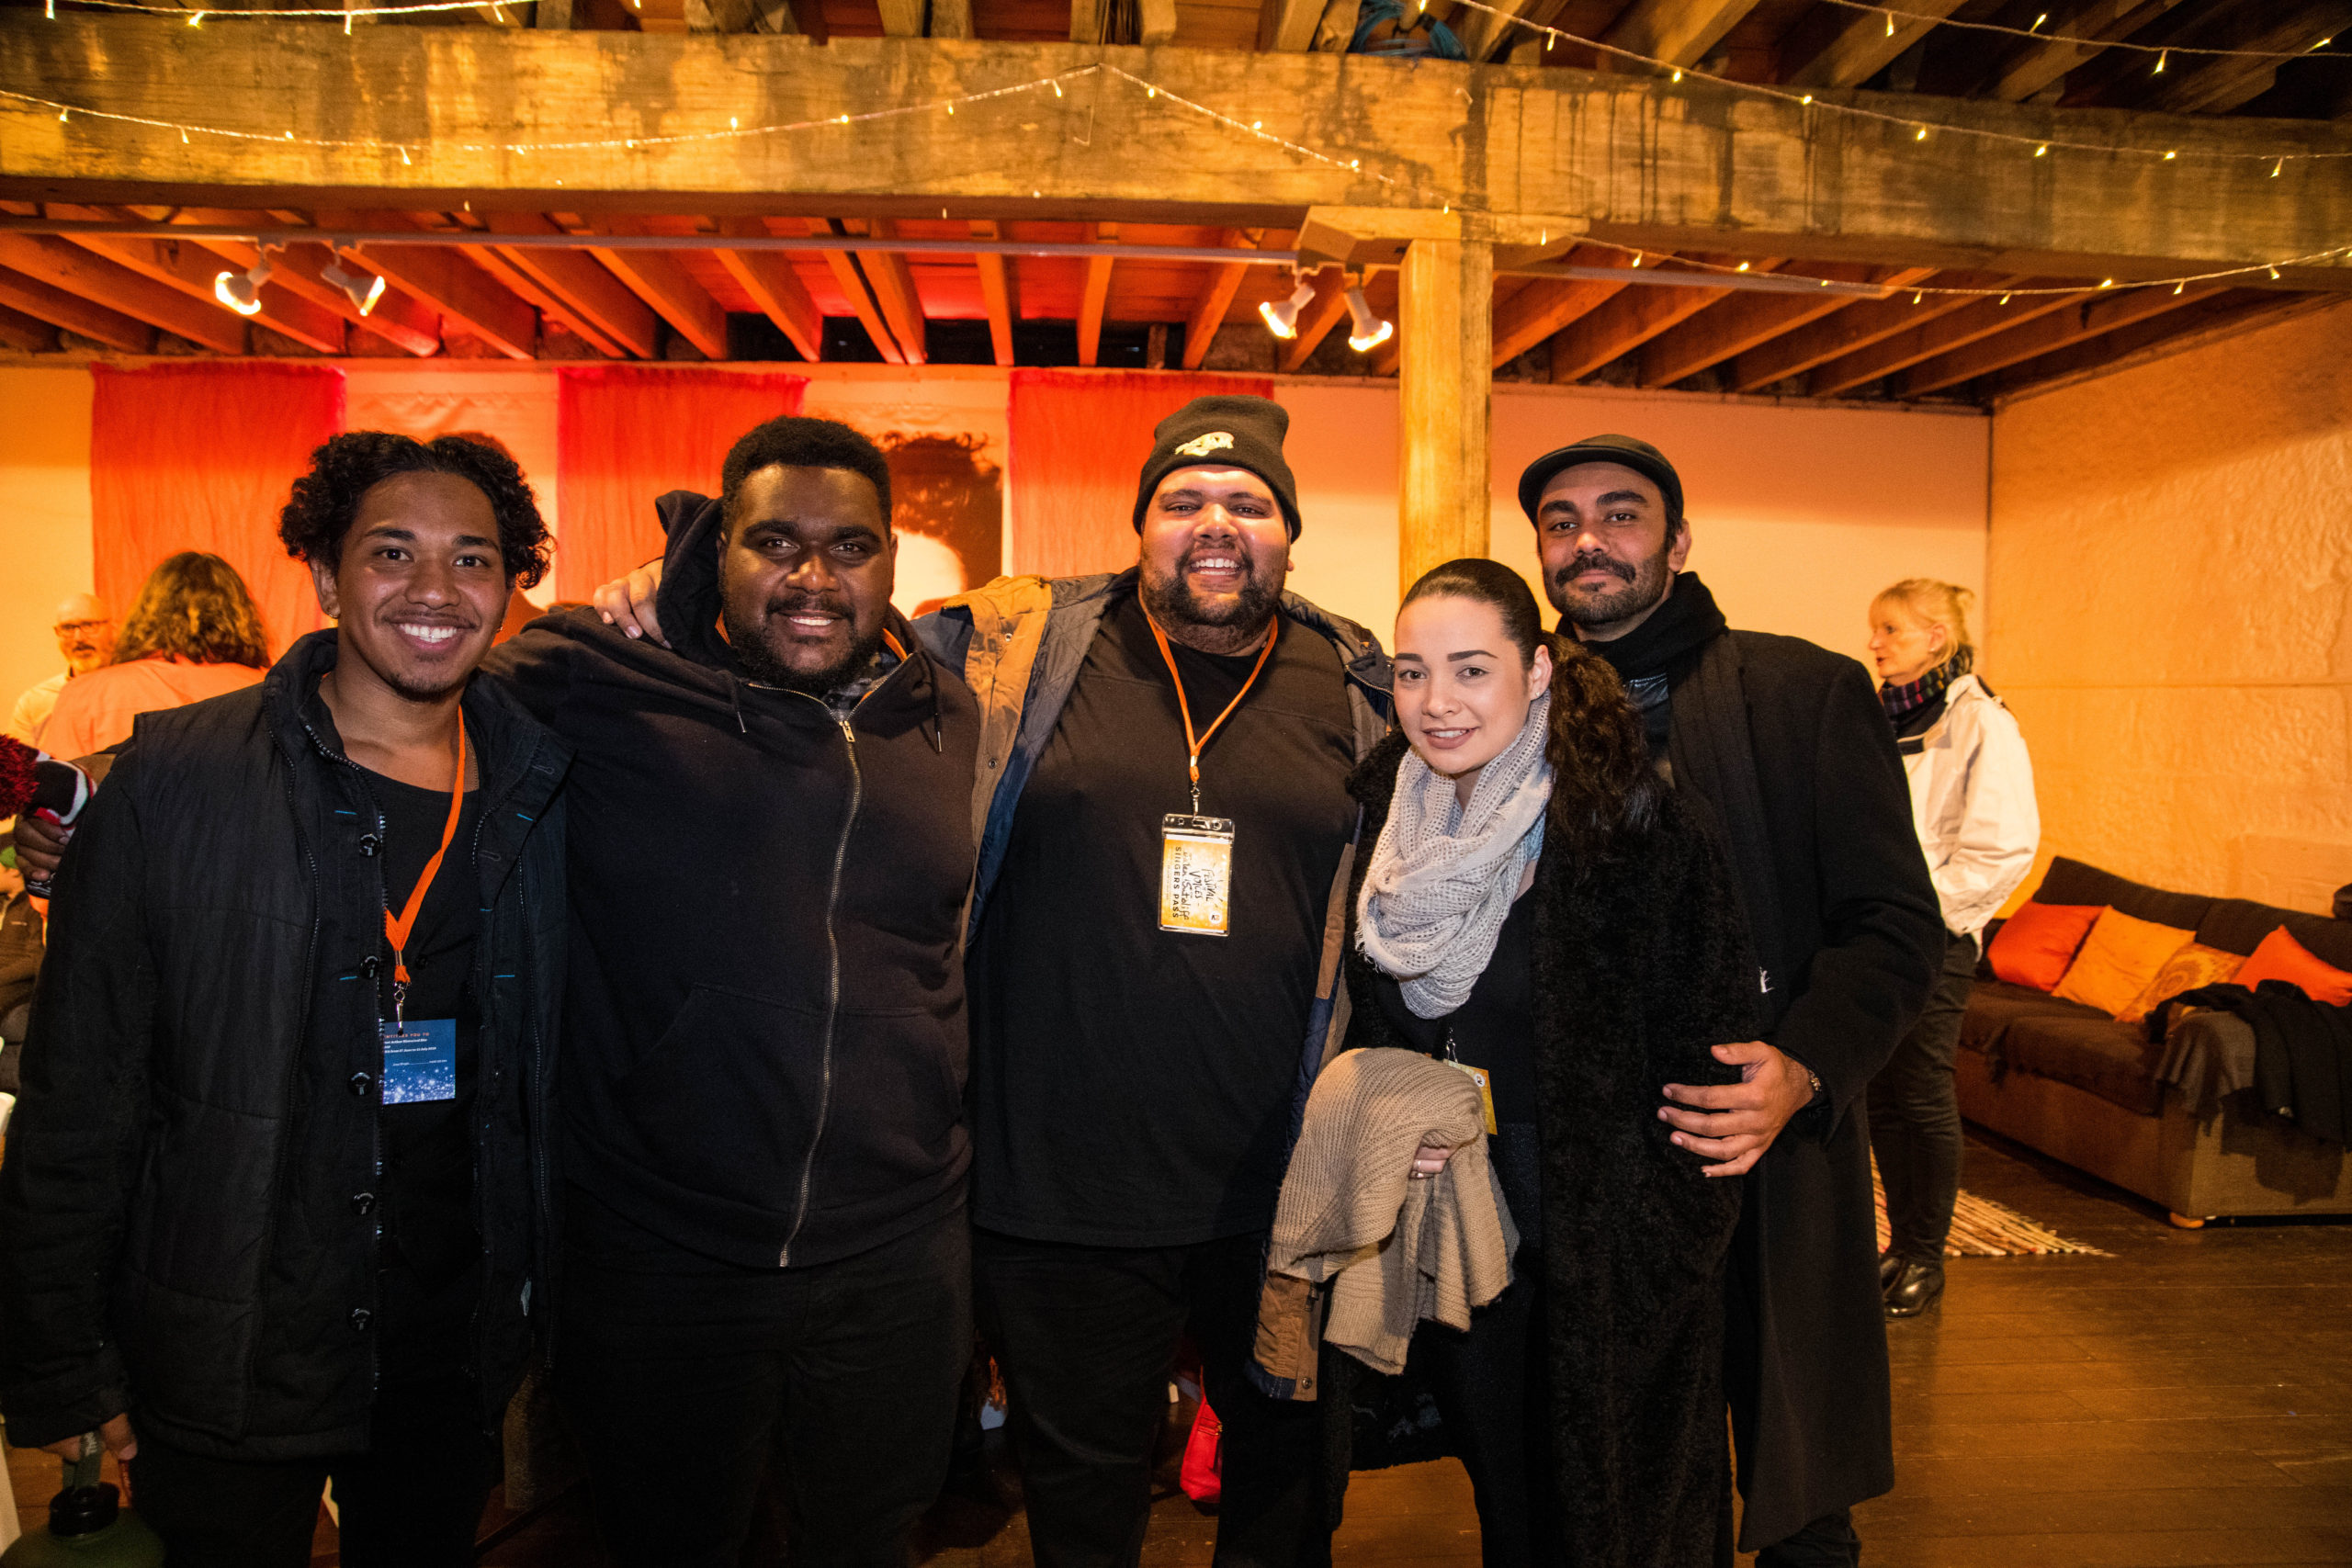 Group of 5 people wearing winter attire embracing and smiling at the camera